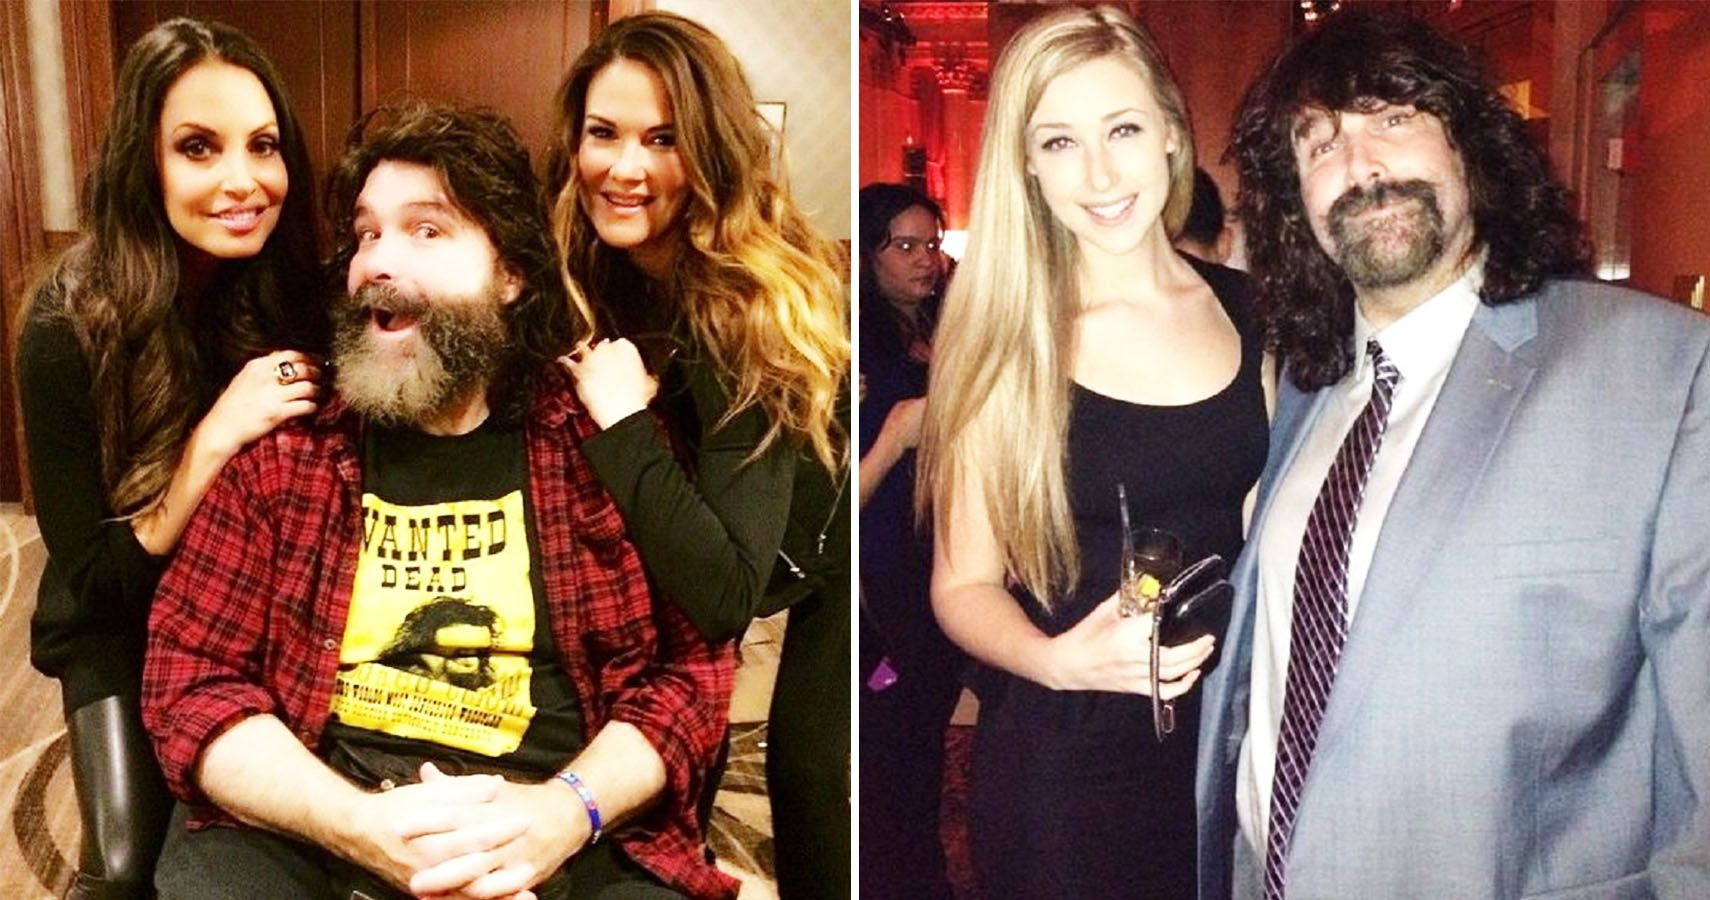 Top 15 Insane Real Life Stories Of Mick Foley